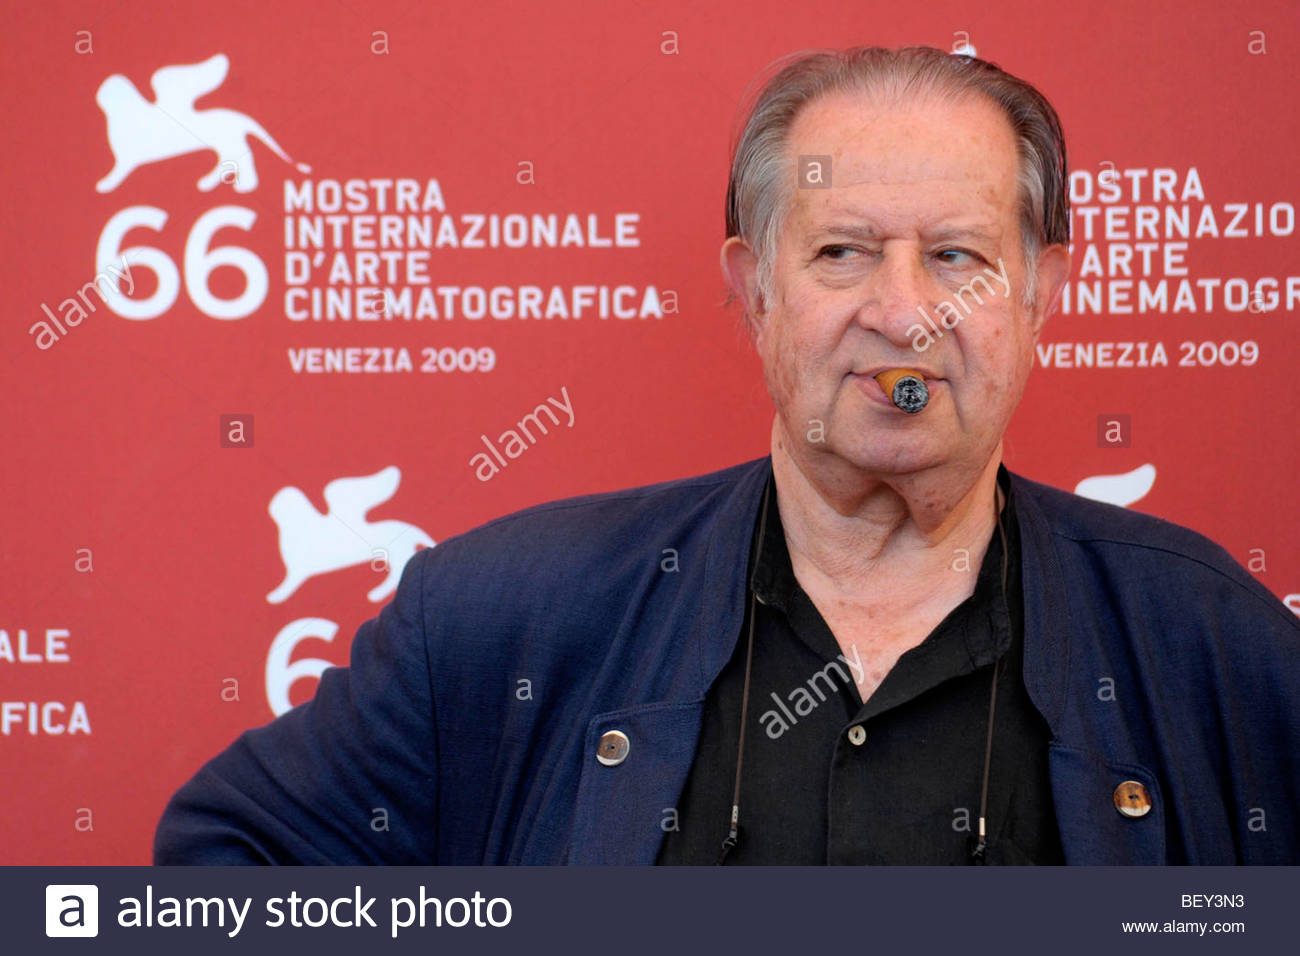 tinto brass, venice 2009, 66th international venice film festival' - Stock Image